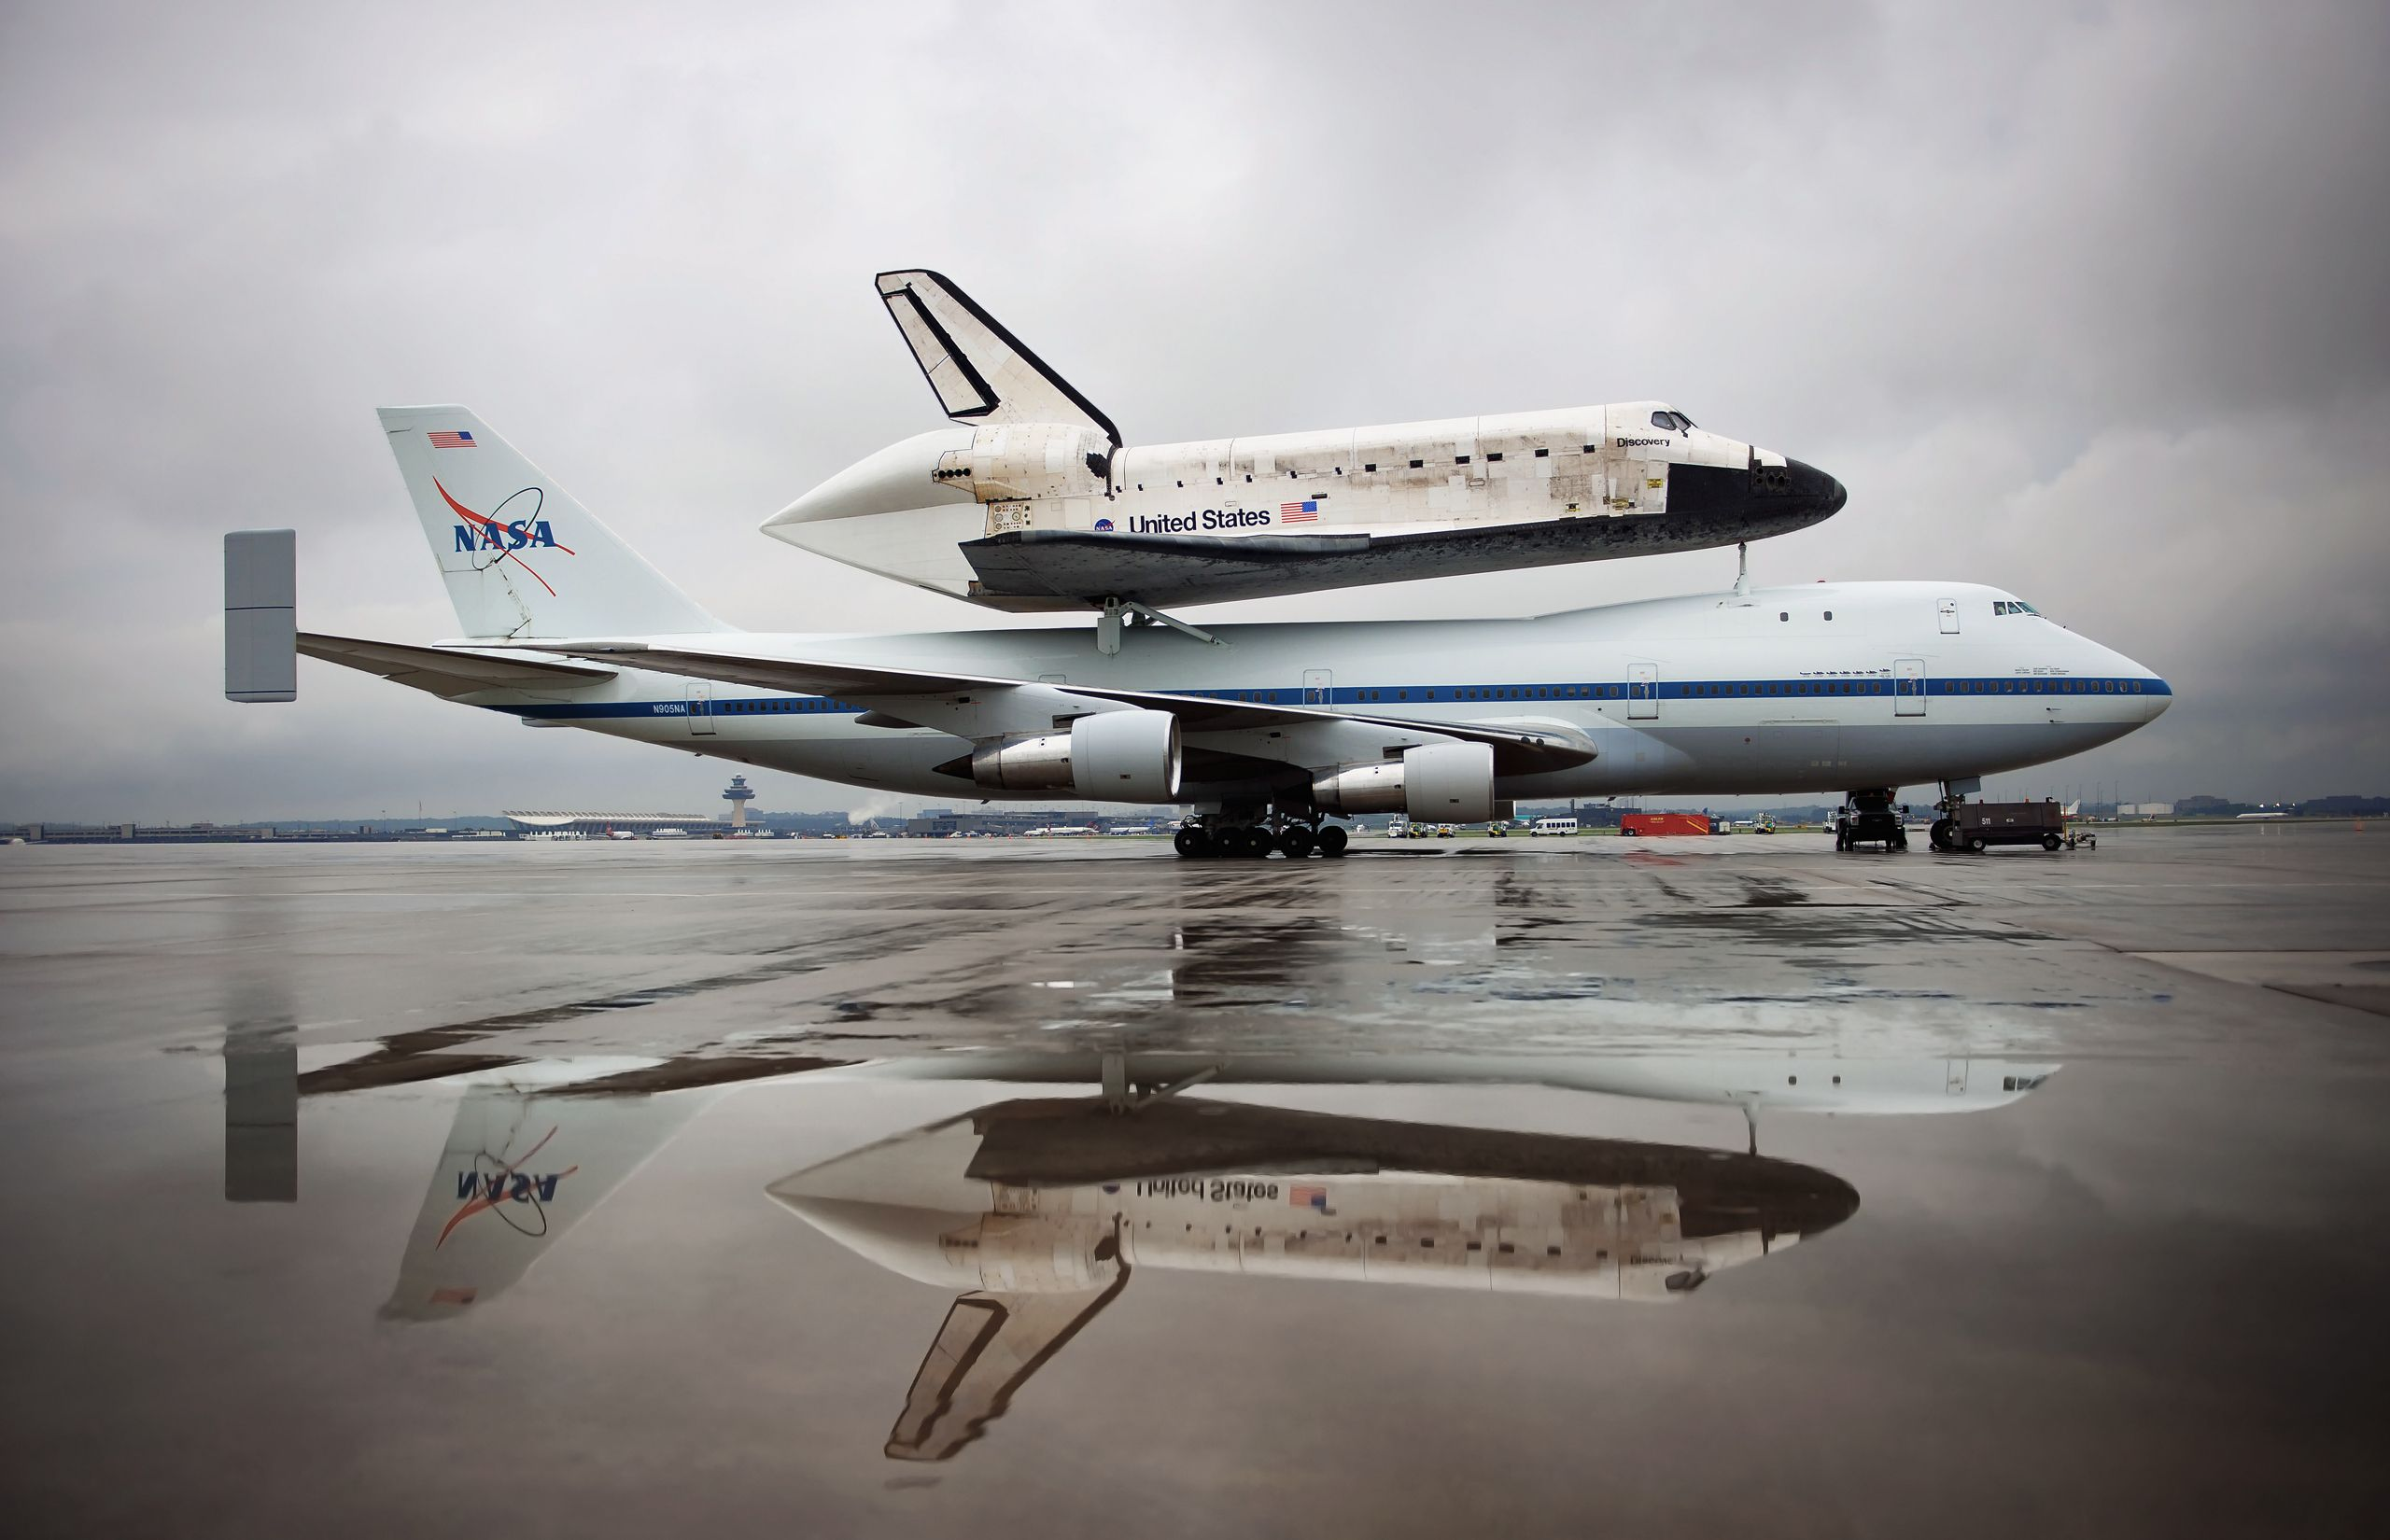 Shuttle, Discovery, NASA, plane, airfield, pool, reflection - HD wallpaper desktop backgrounds